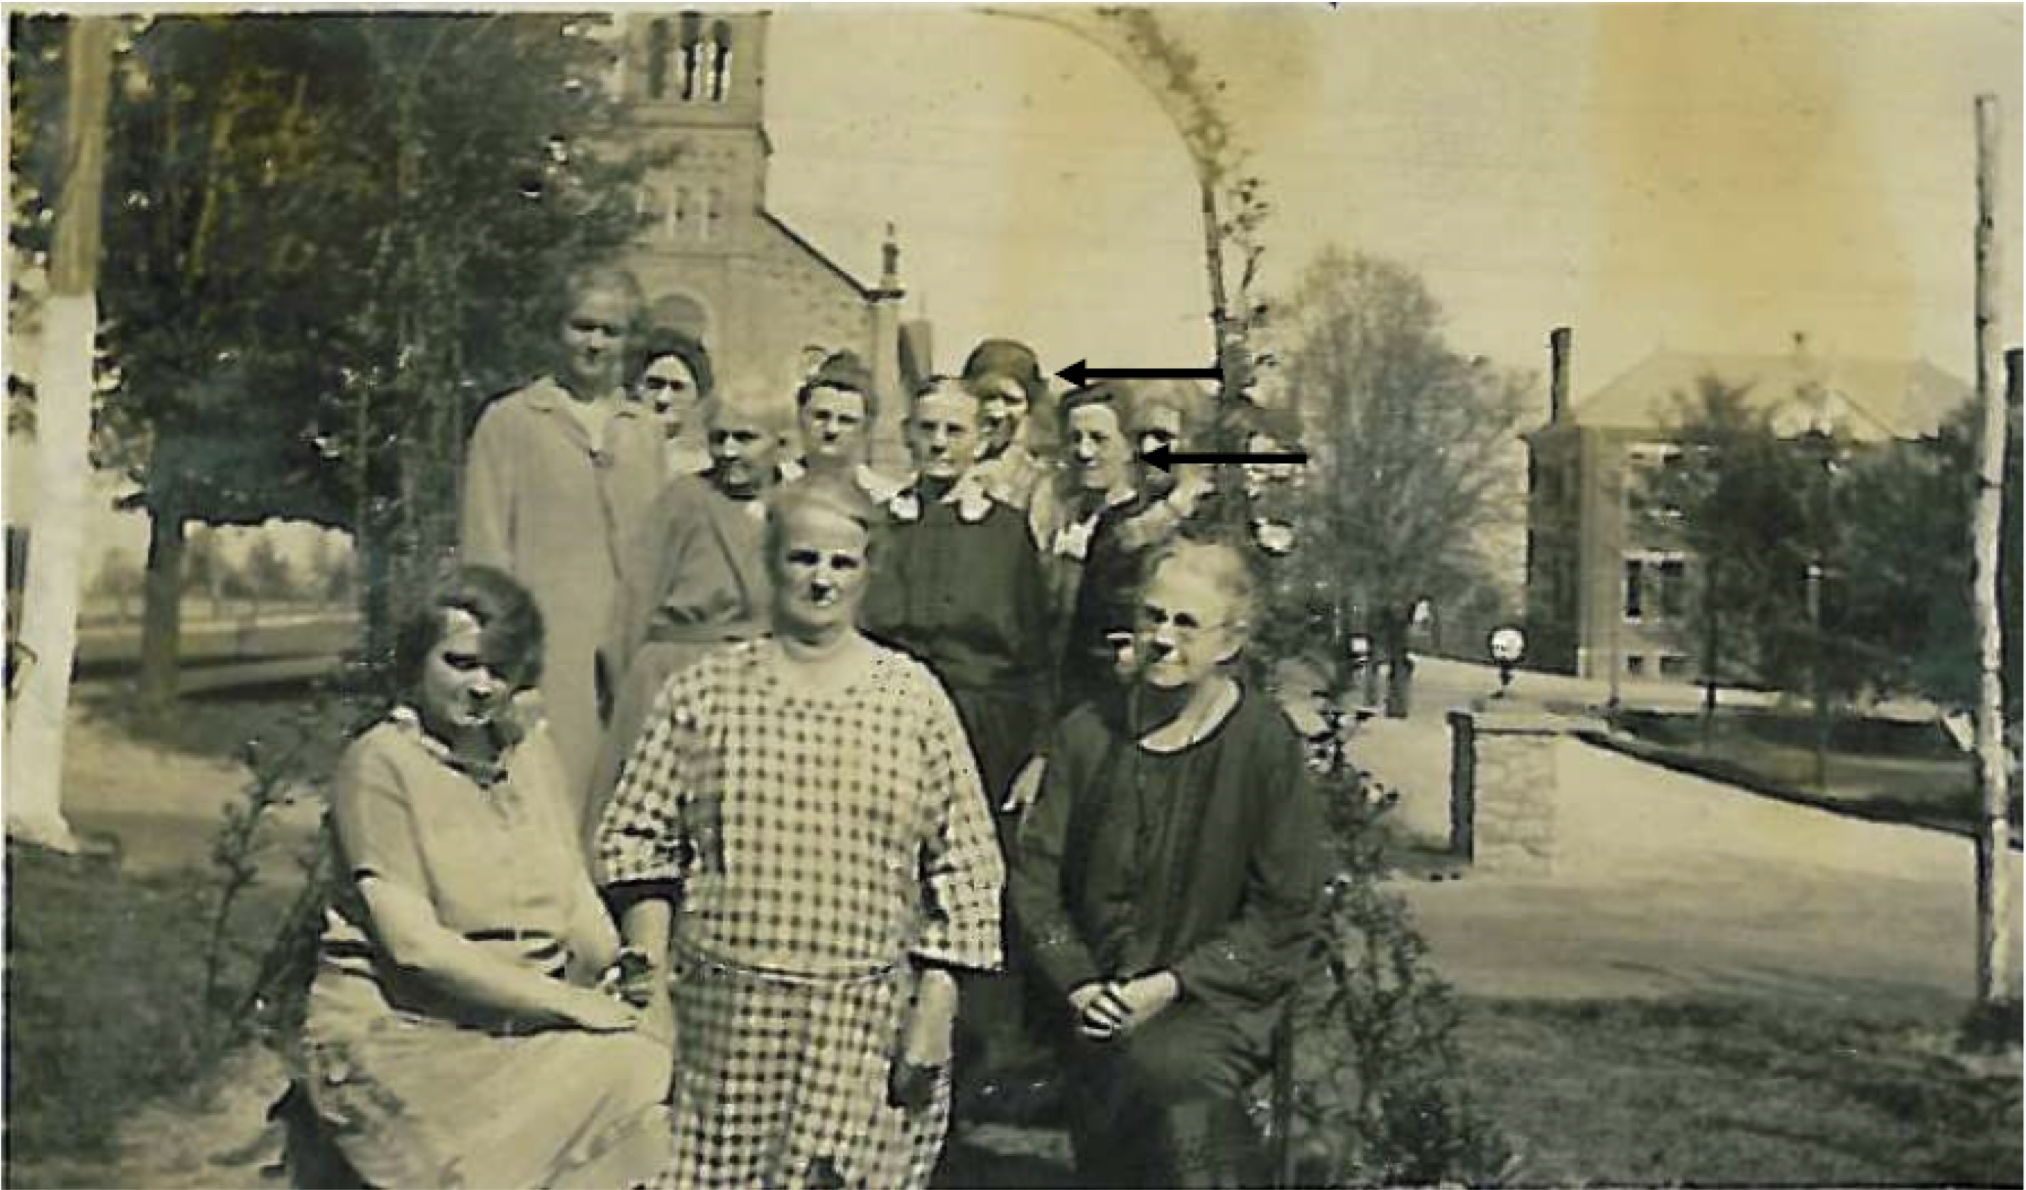 Katie Reimerink Klawitter in plaid dress in front of Our Lady Victory Church, Neeb Road in Delhi. Also pictured in the rear by the top arrow is Anna Sandmann, a daughter-in-law of Katie Reimerink and Eduard Klawitter. Also Rosa Klawitter Hubert their daughter, lower arrow.